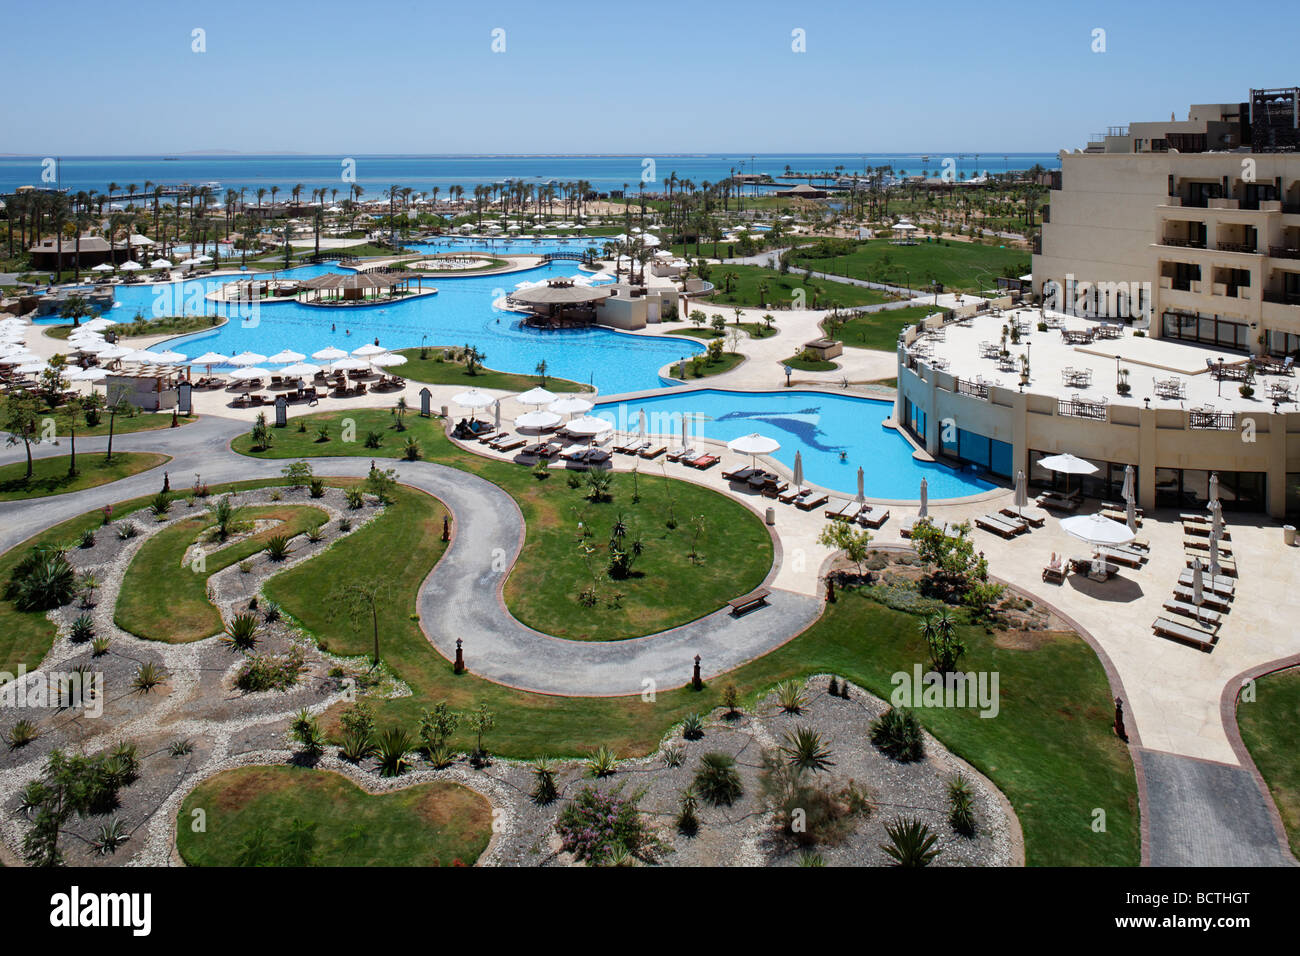 Garden, pool, roof terrace, Steigenberger Al Dau Beach Resort, Hurhada, Egypt, Red Sea, Africa - Stock Image